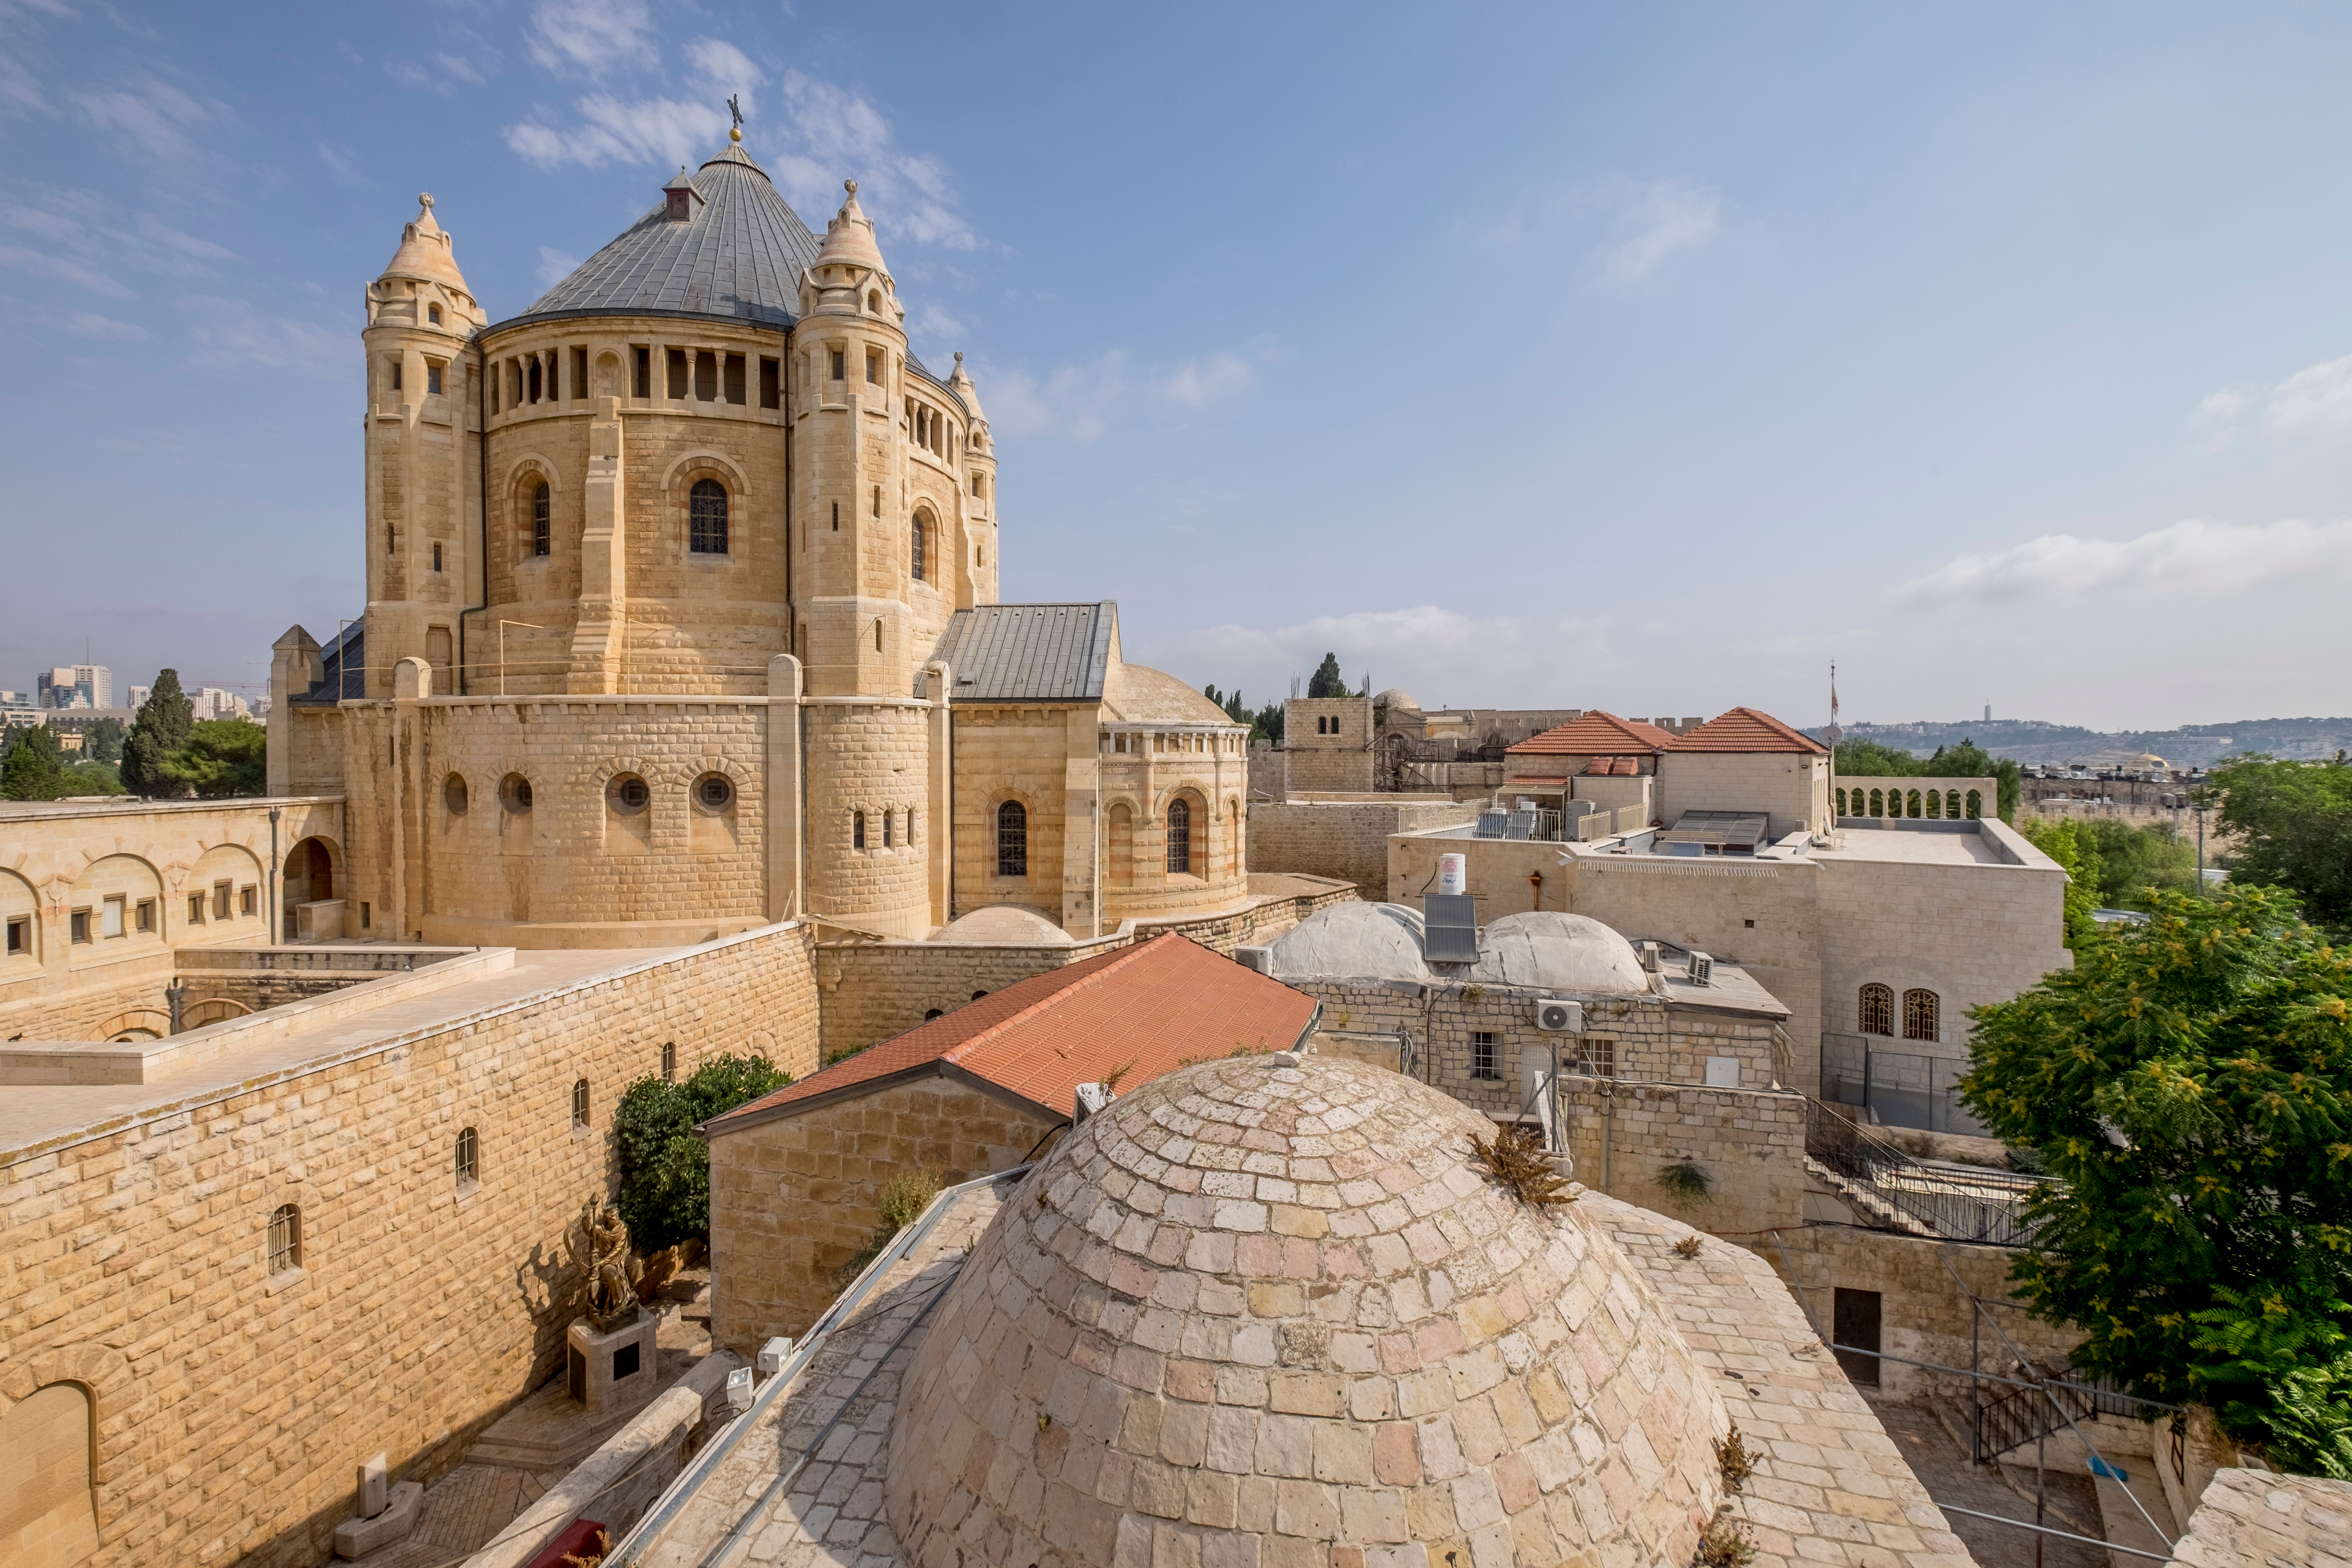 David's Tomb and Abbey of the Dormition, Jerusalem